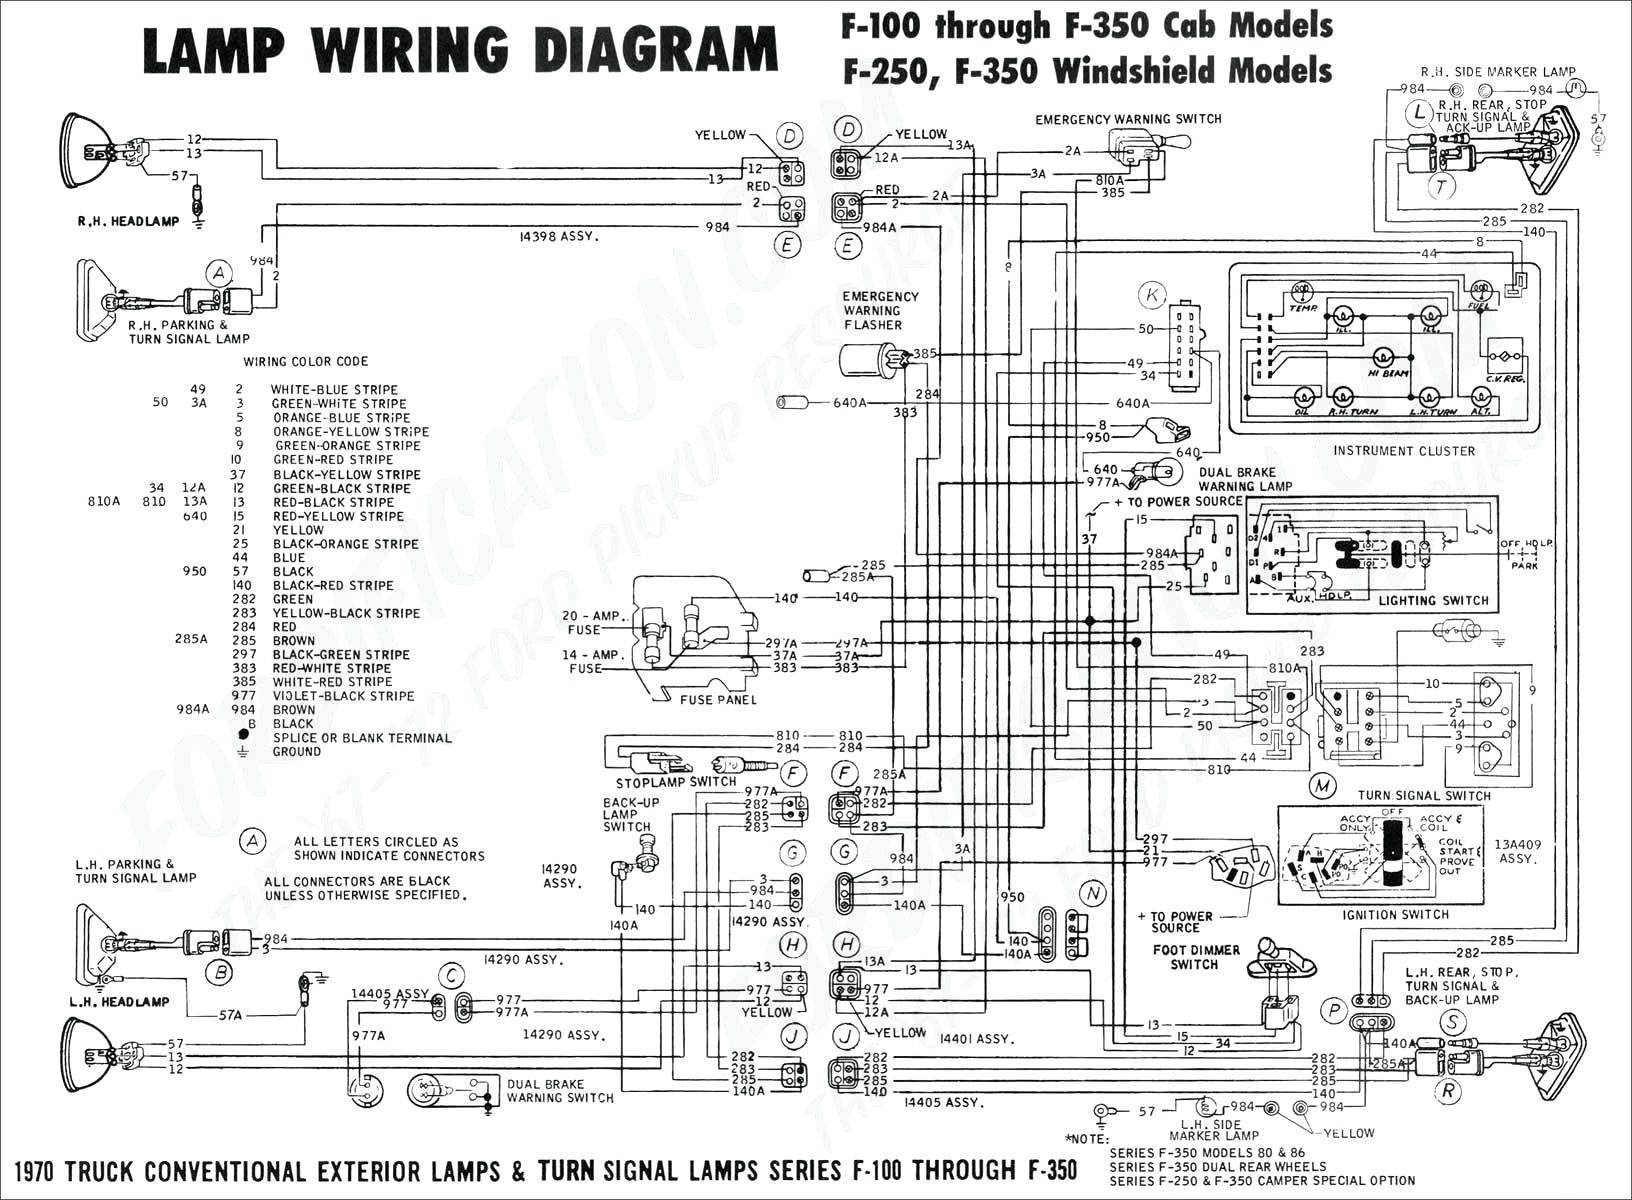 E8AAC9 Trailer Tail Lights Wiring Diagram | Wiring LibraryWiring Library